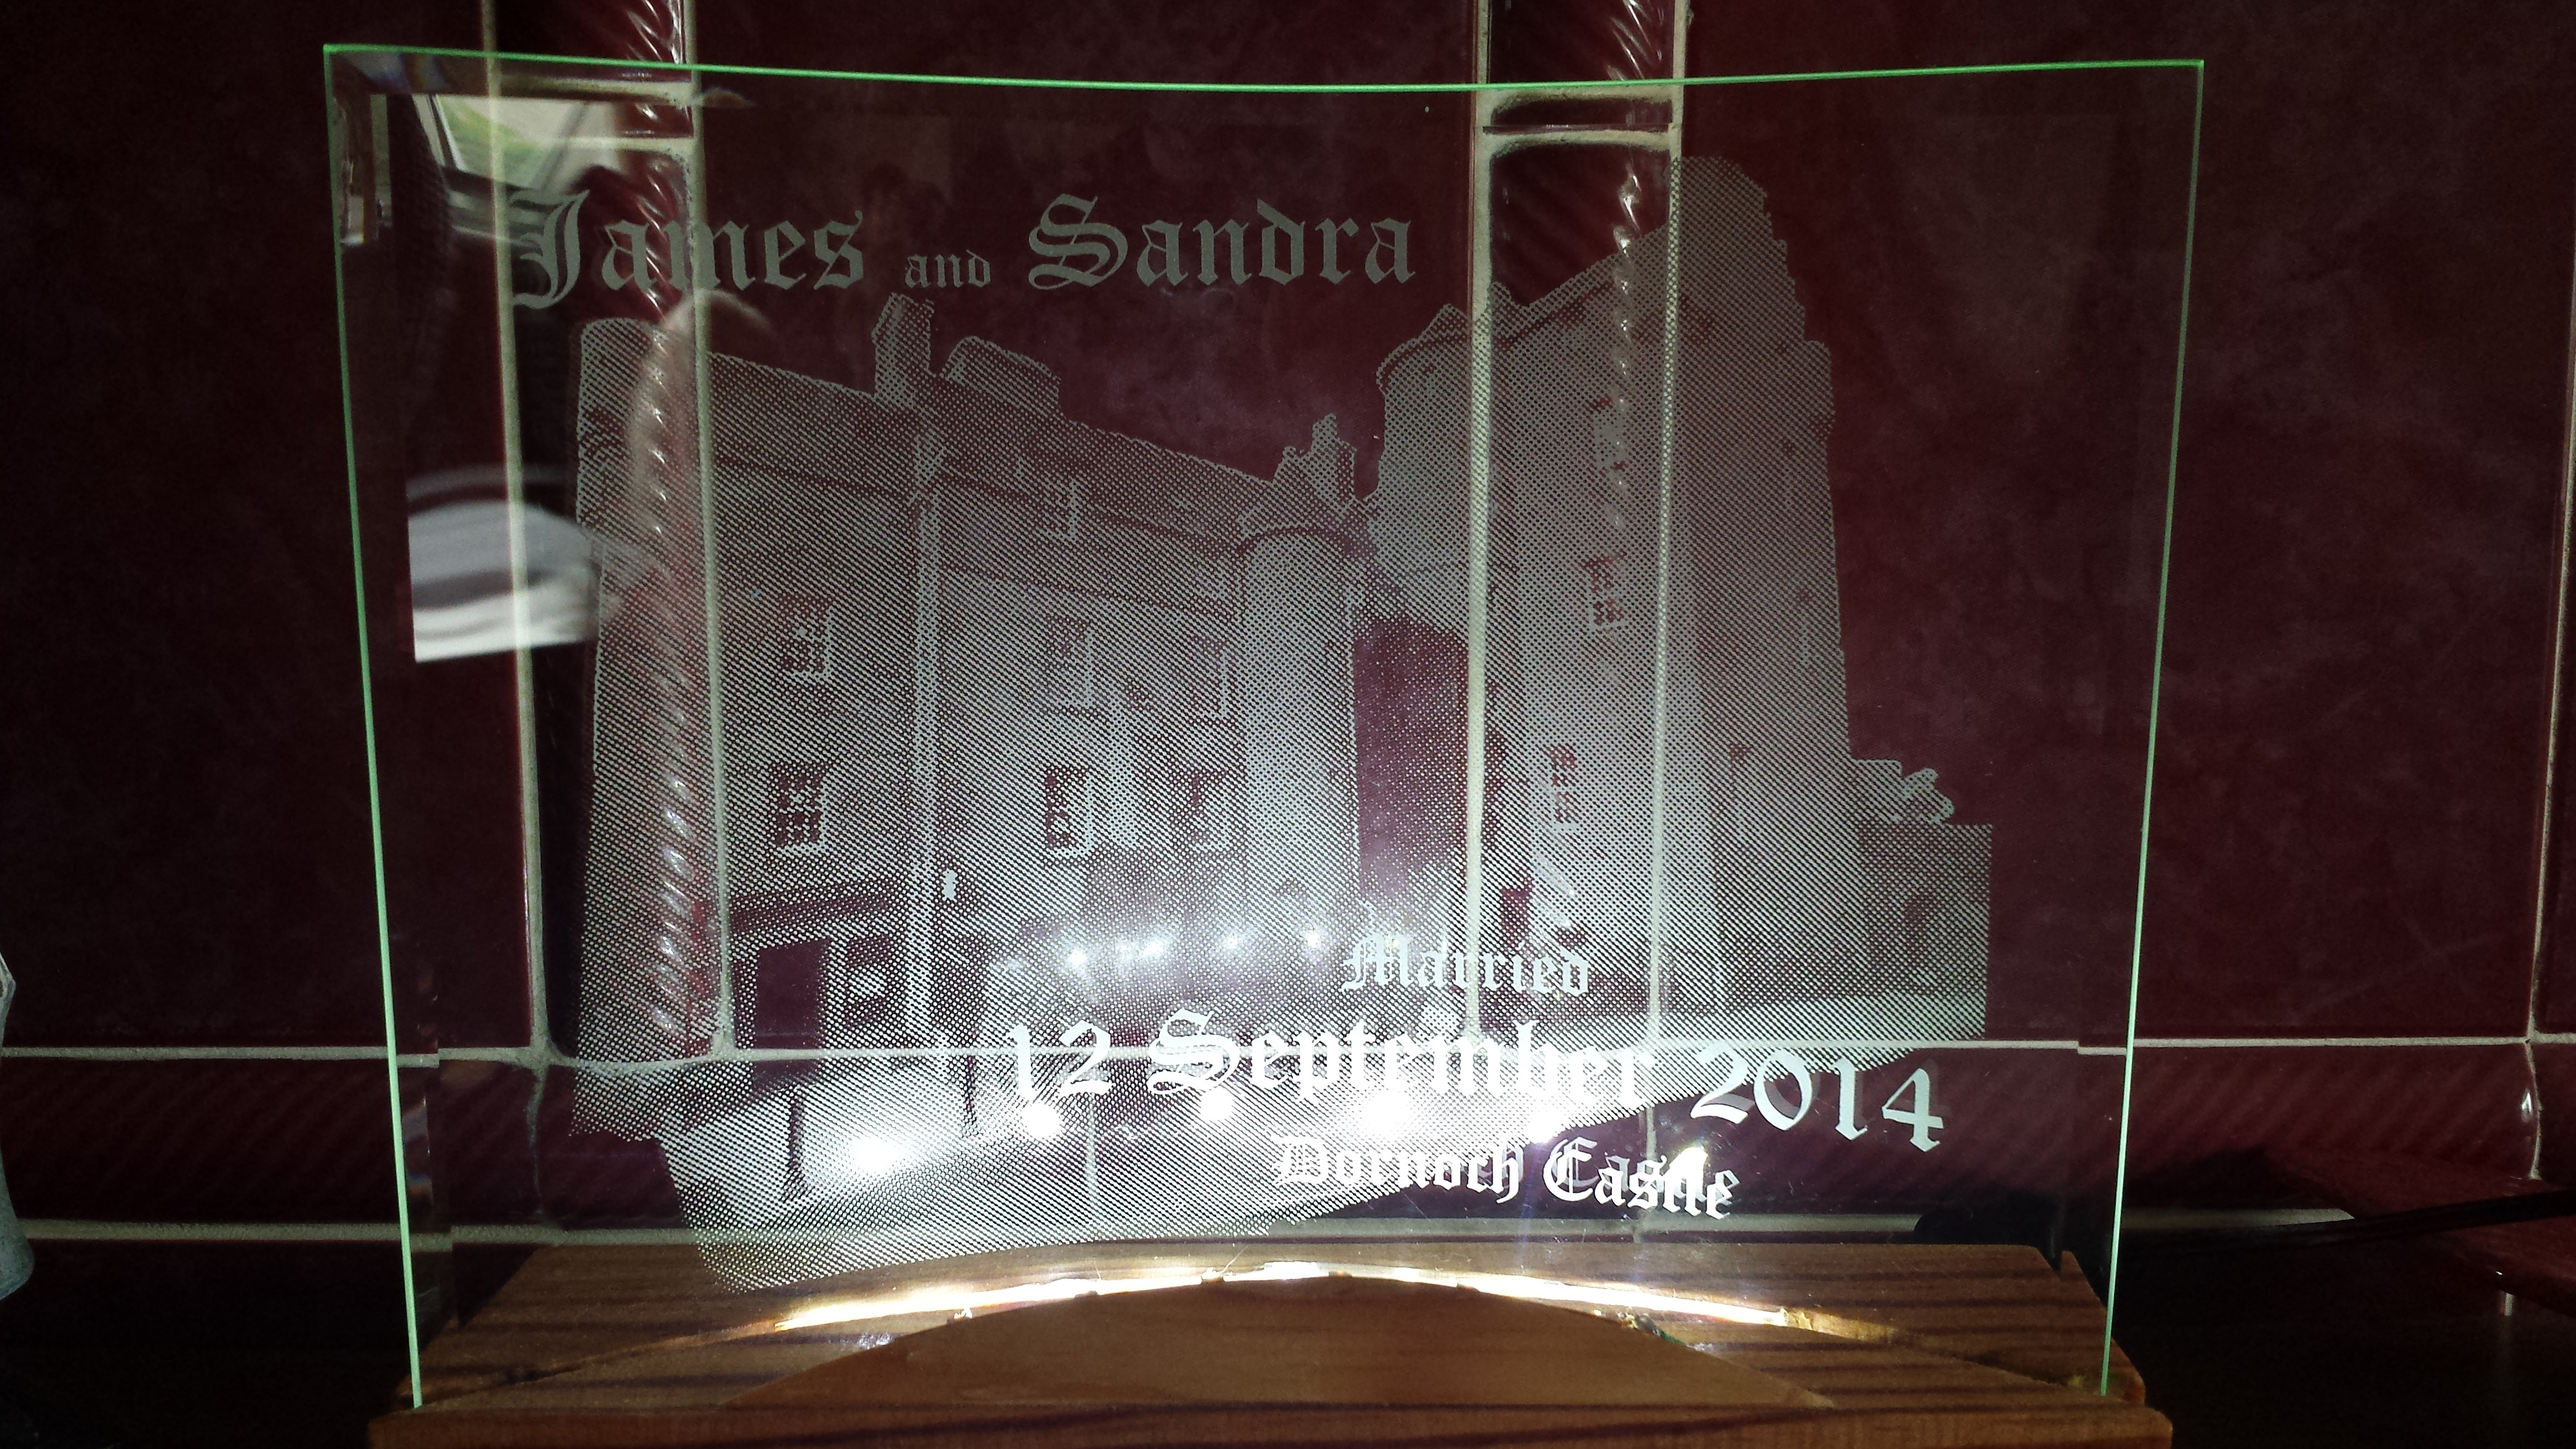 This is a picture engraving of the Dornoch Castle hotel directly onto the back of a piece of curved glass.On the front of the glass is engraved James and Sandra and the date and location of the marriage. Engraved in this manner creates depth of field and gives a 3D effect.